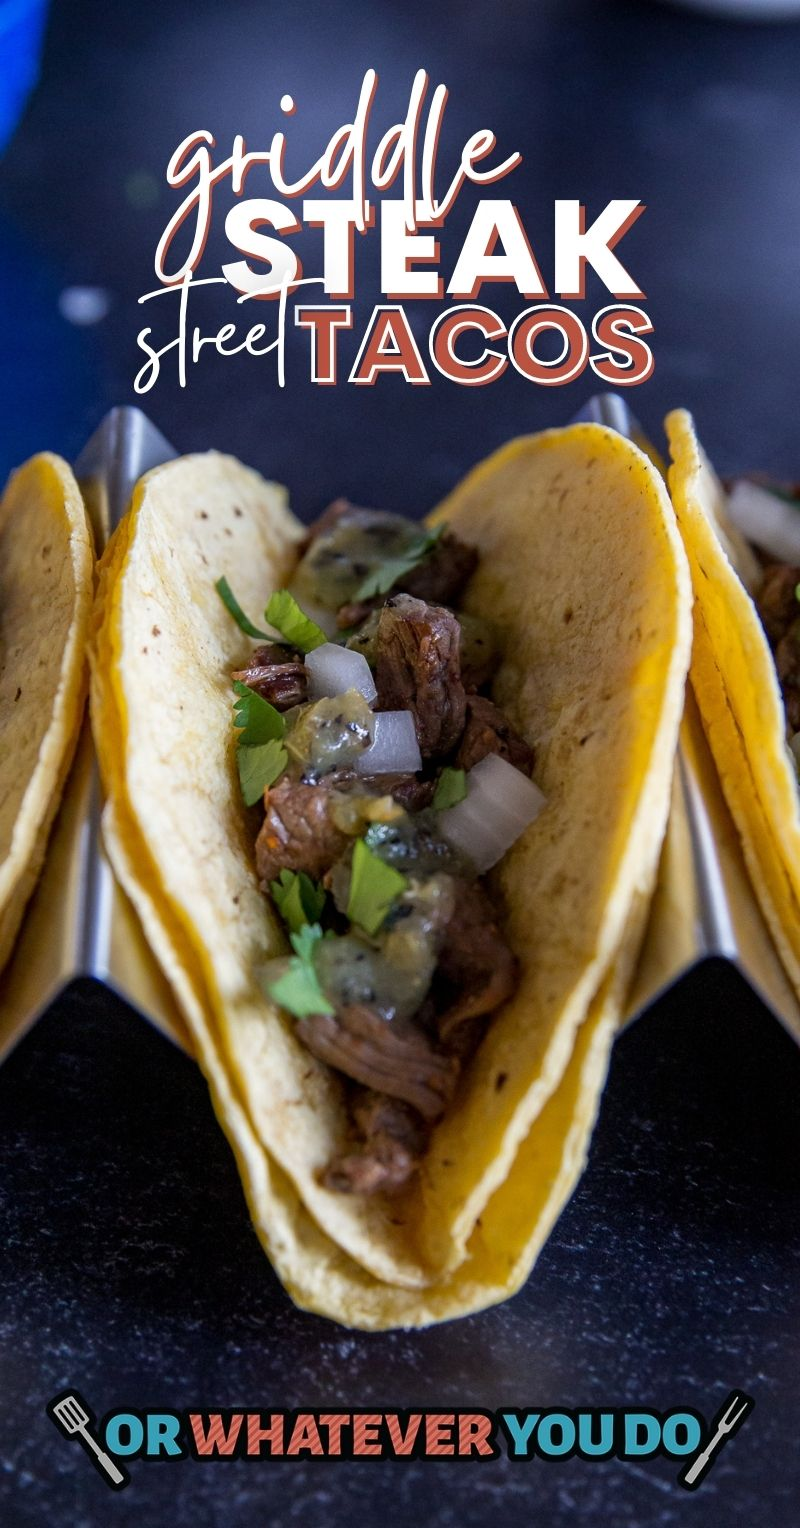 Griddle Steak Street Tacos